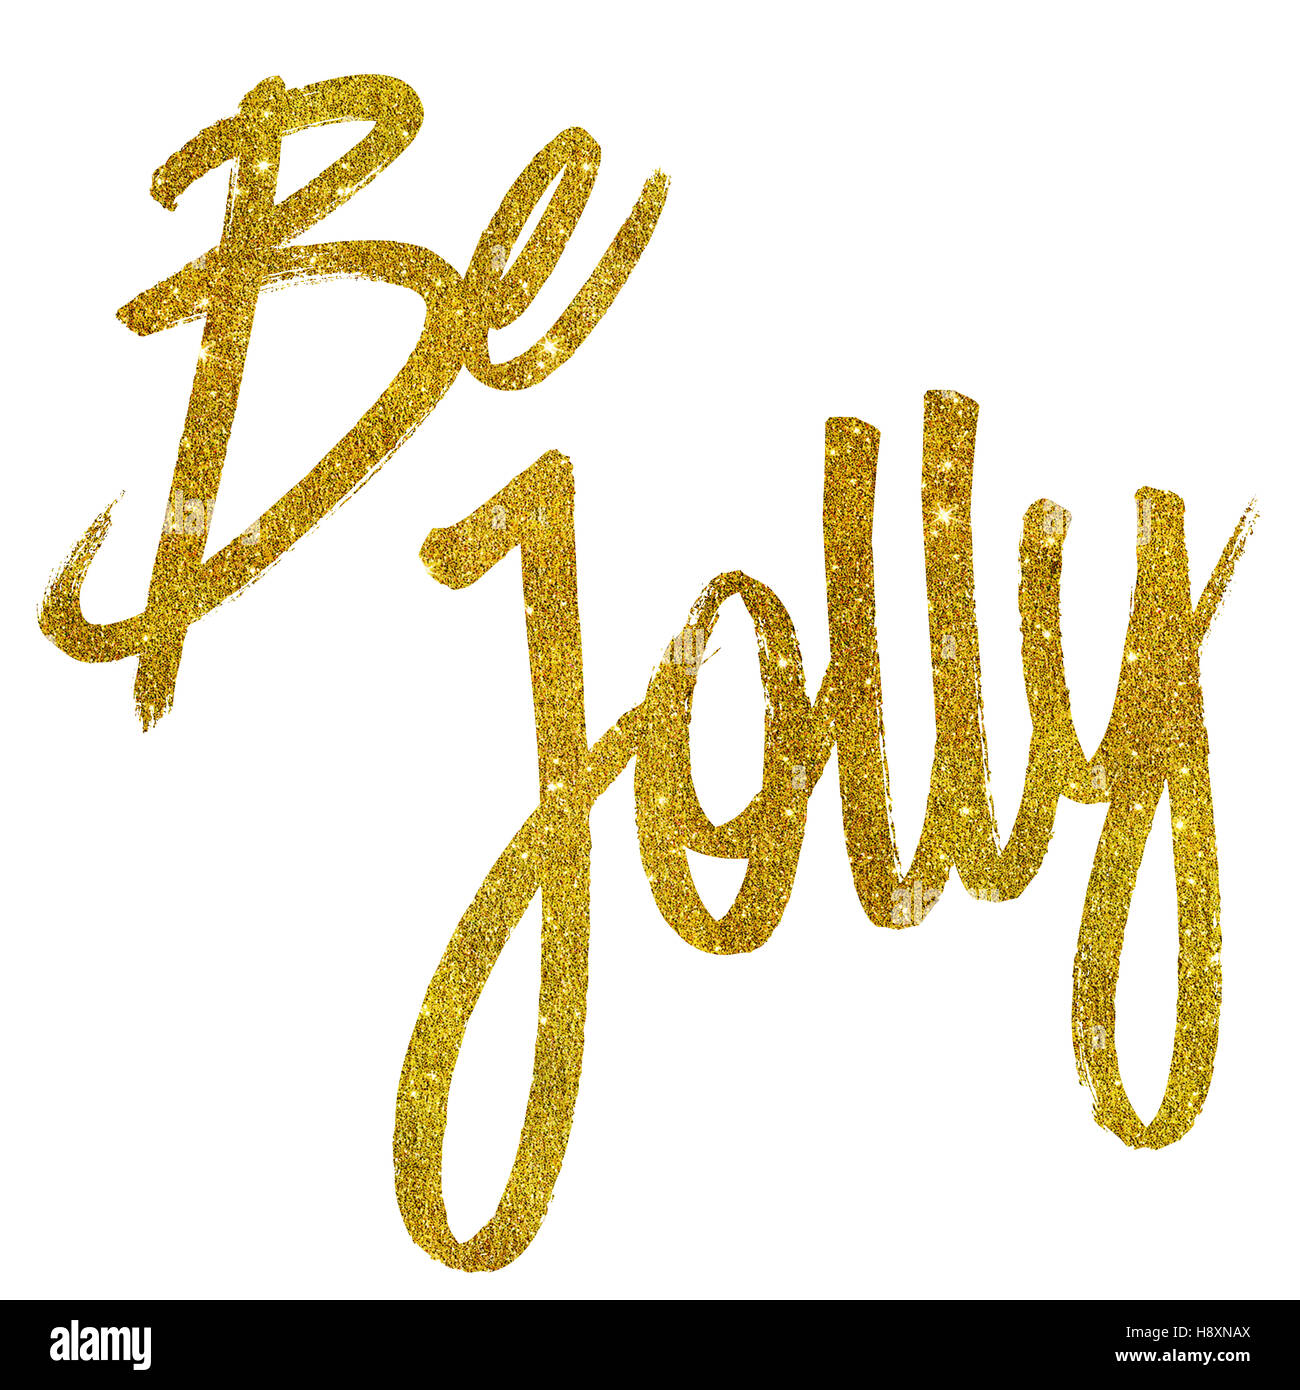 Be Jolly Gold Faux Foil Metallic Glitter Quote Isolated - Stock Image